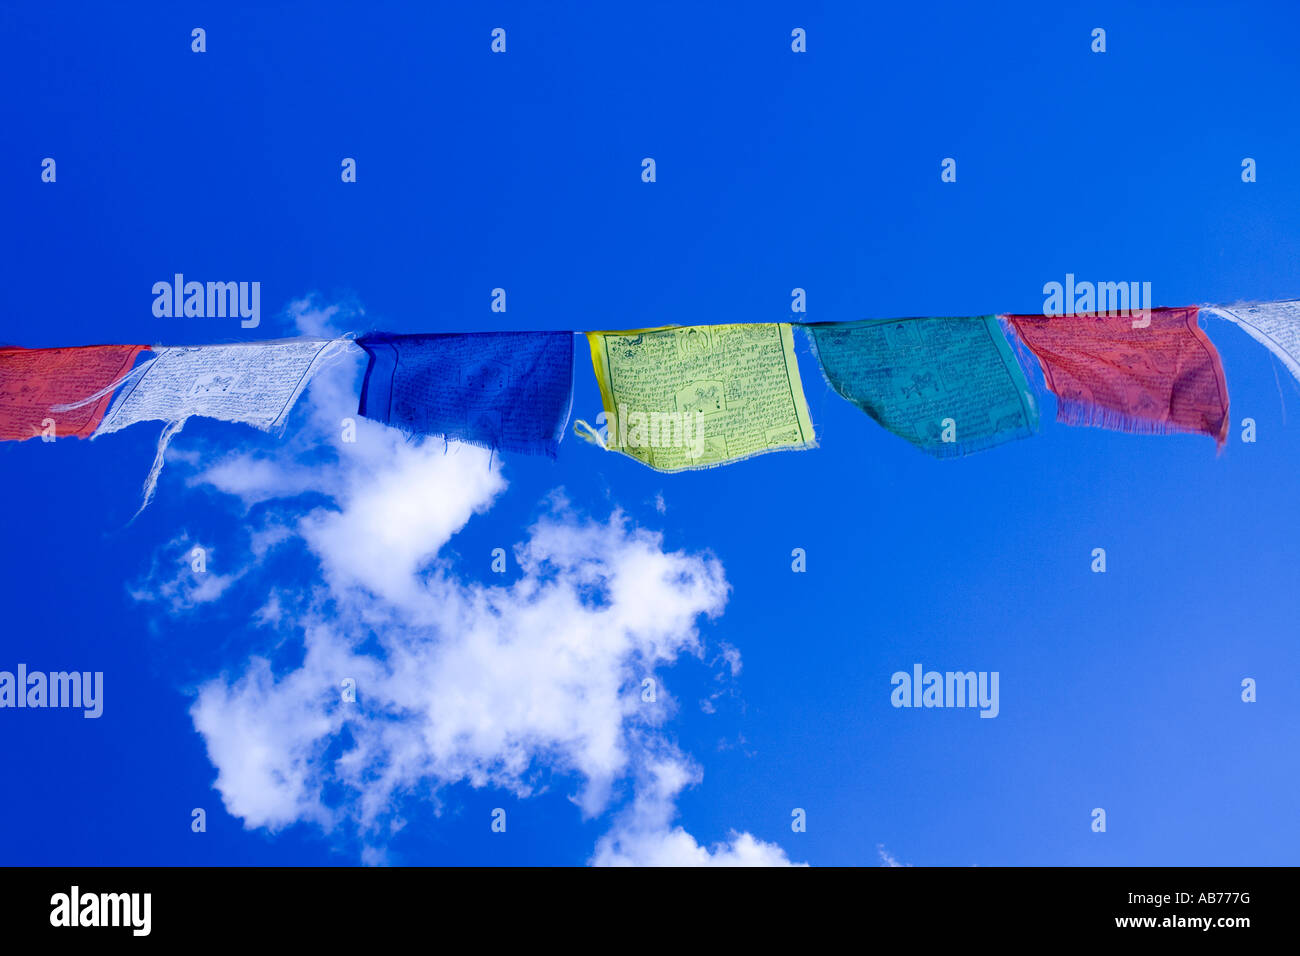 colourful bunting prayer flags - Stock Image